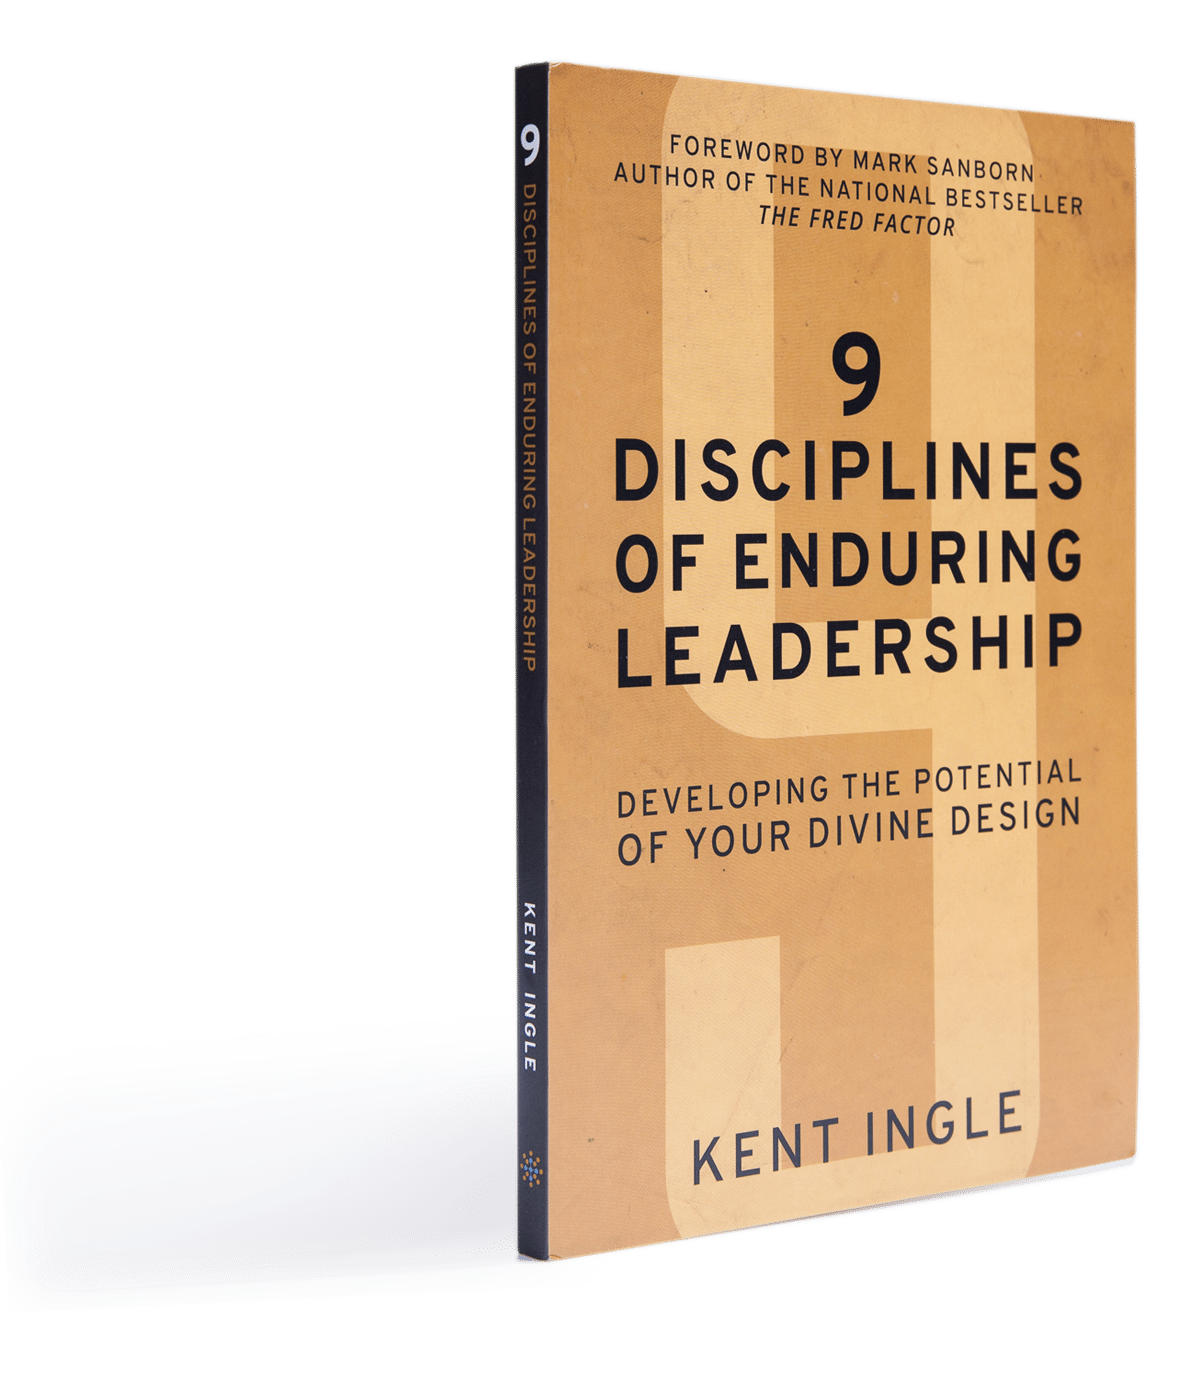 Book cover of Kent Ingle's book titled 9 Disciplines of Enduring Leadership